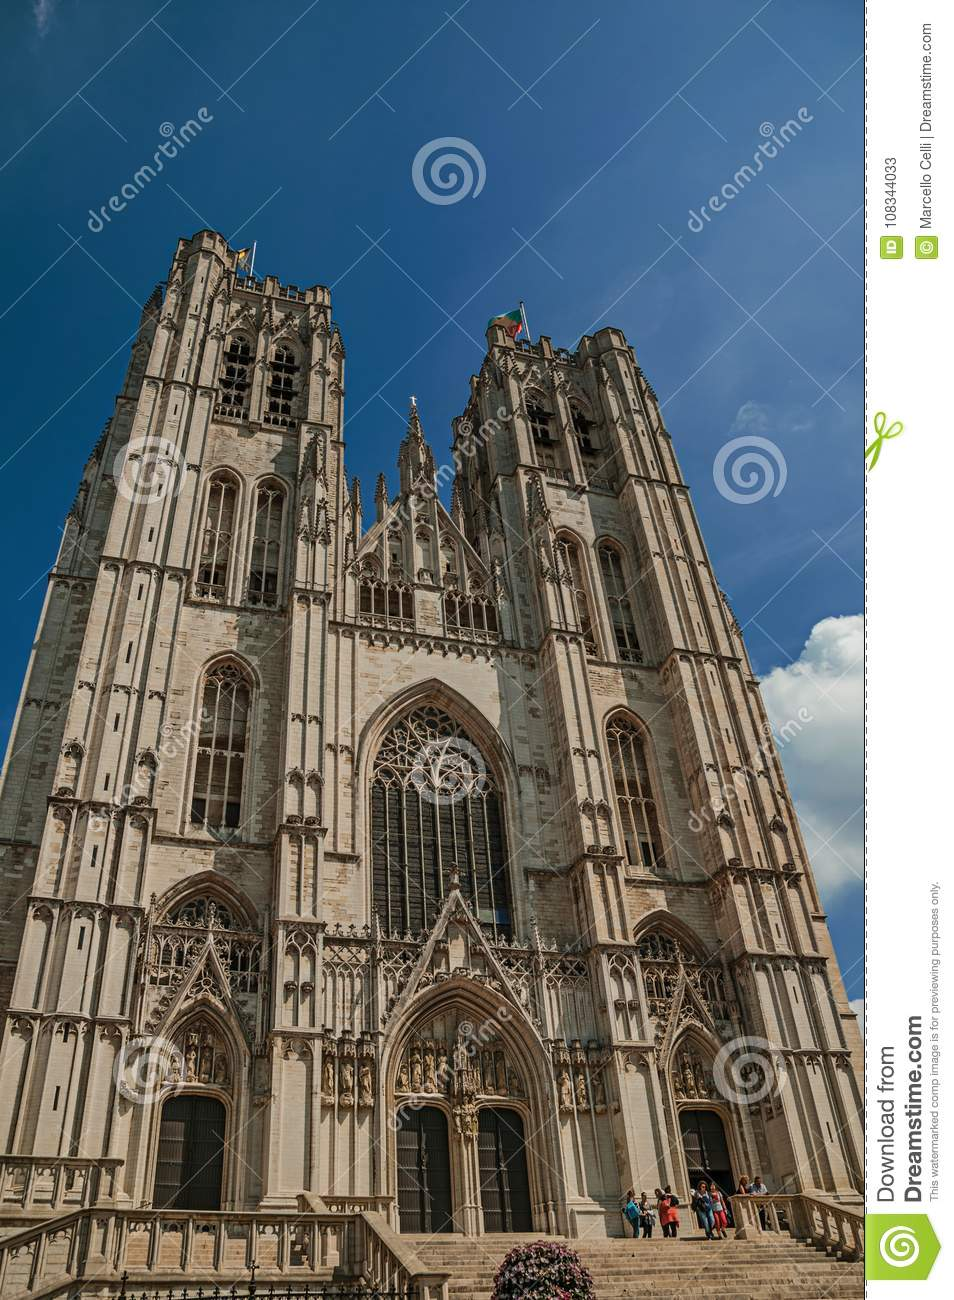 Gothic facade of St. Michael and St. Gudula's Cathedral and blue sunny sky in Brussels.